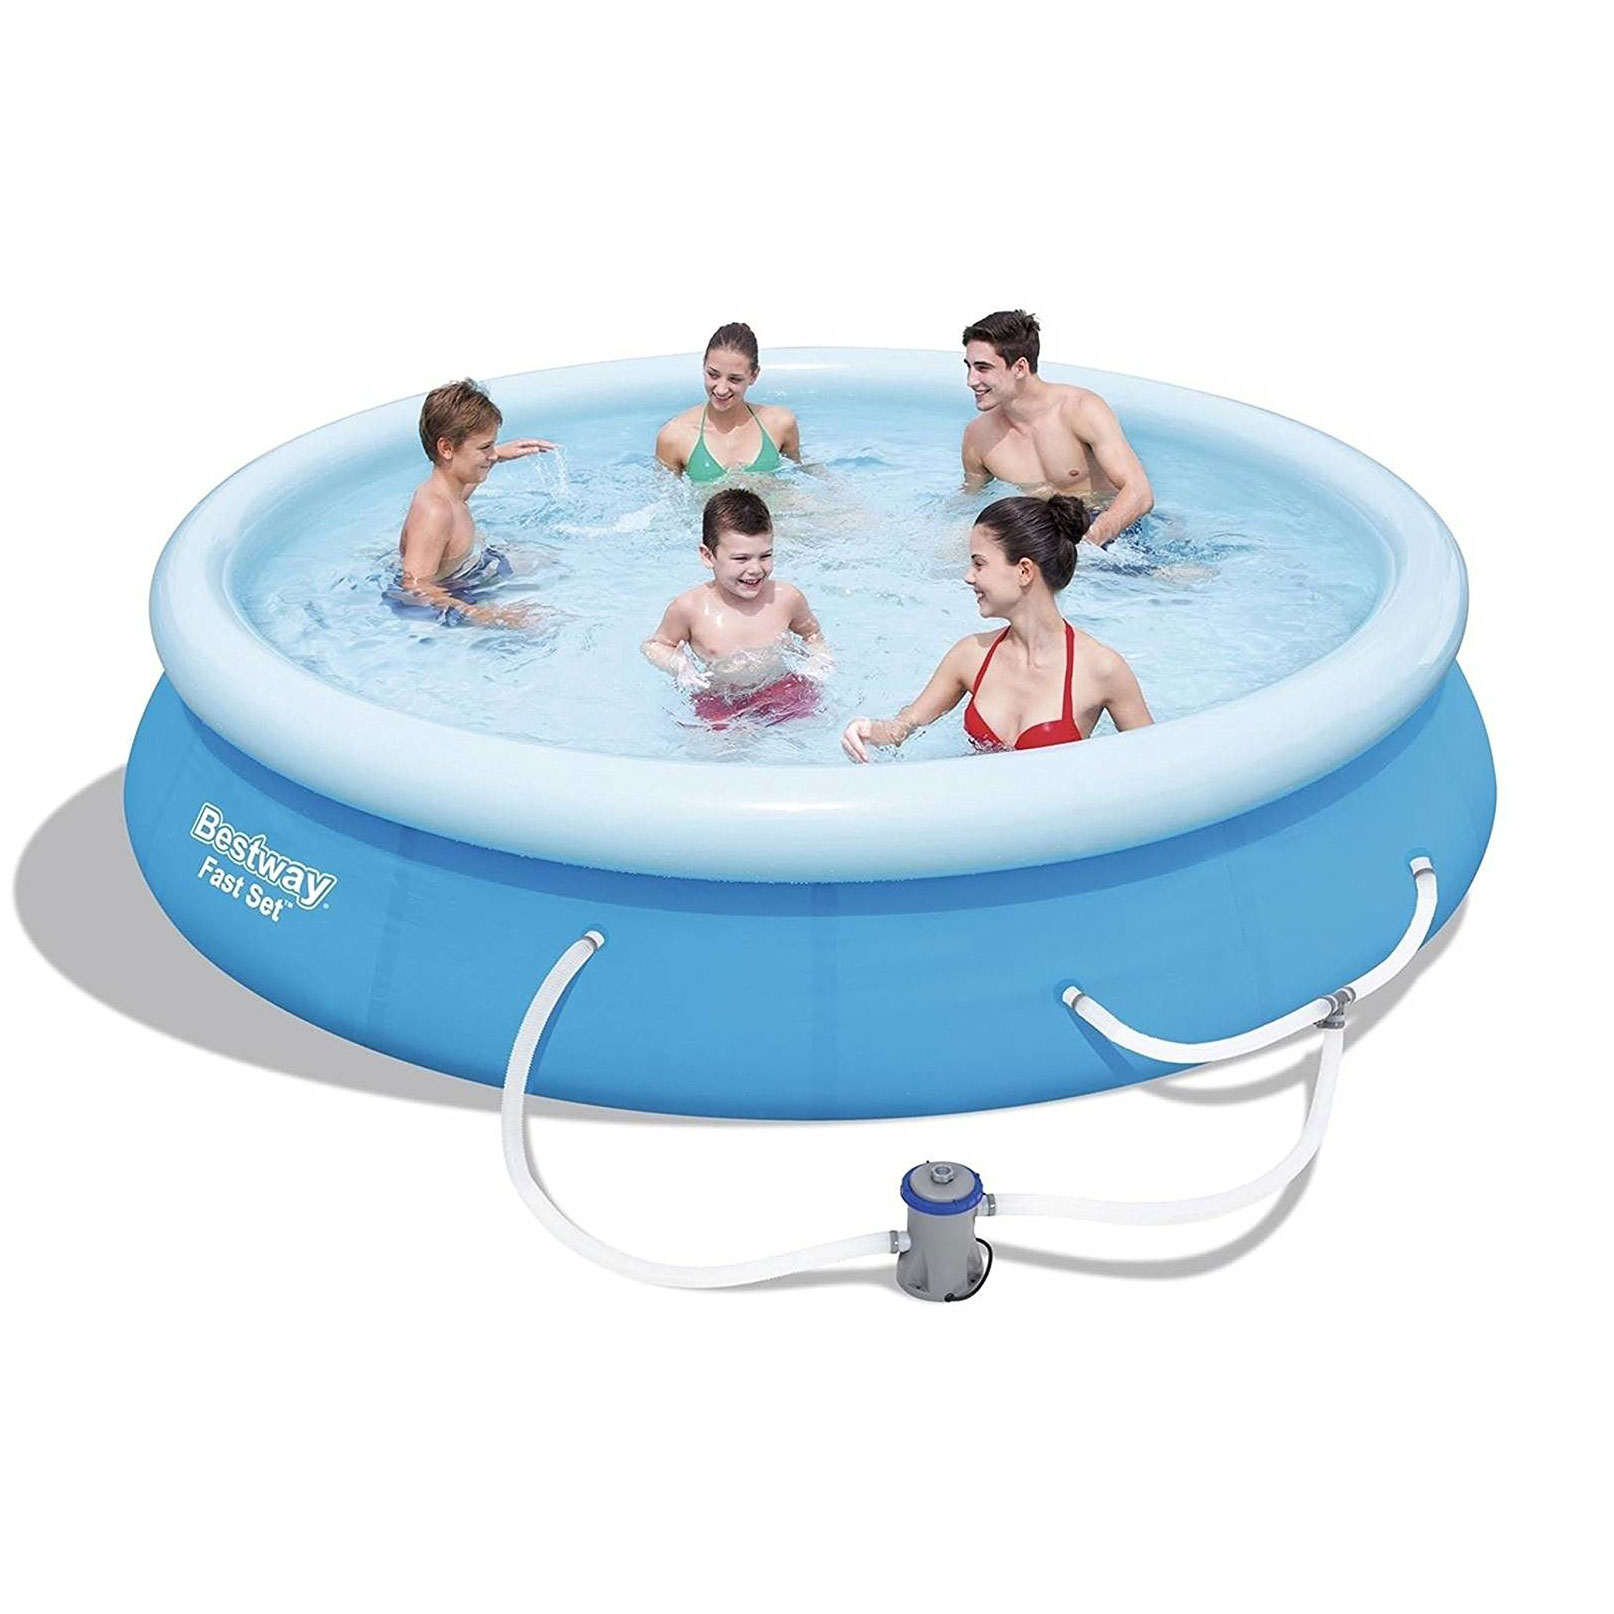 Details about Bestway 12 Feet x 30 Inches Fast Set Inflatable Above Ground  Pool w/ Filter Pump